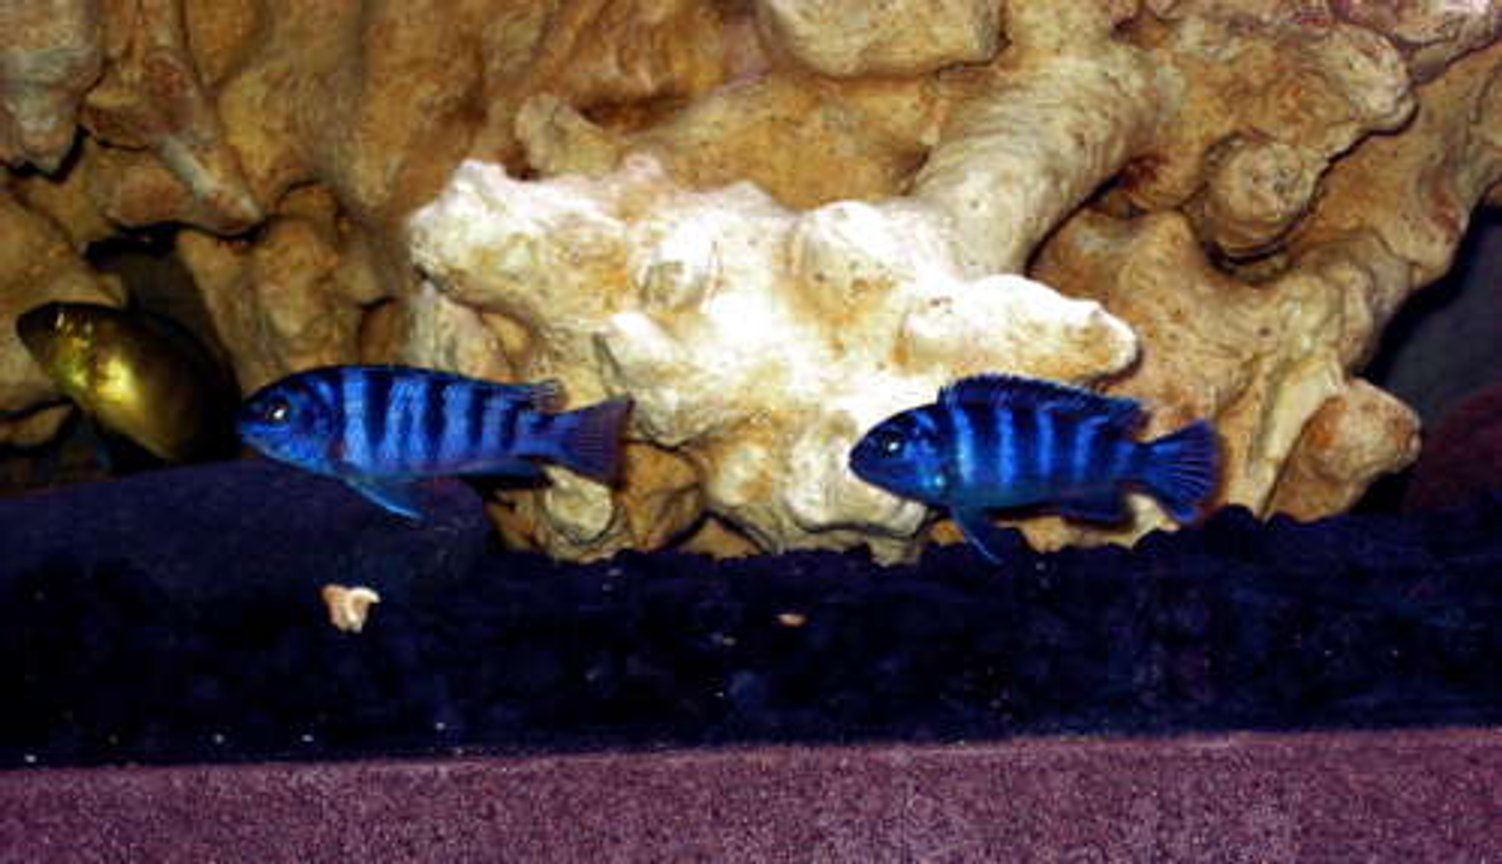 freshwater fish - pseudotropheus demasoni - demasoni cichlid stocking in 32767 gallons tank - Deep Blue